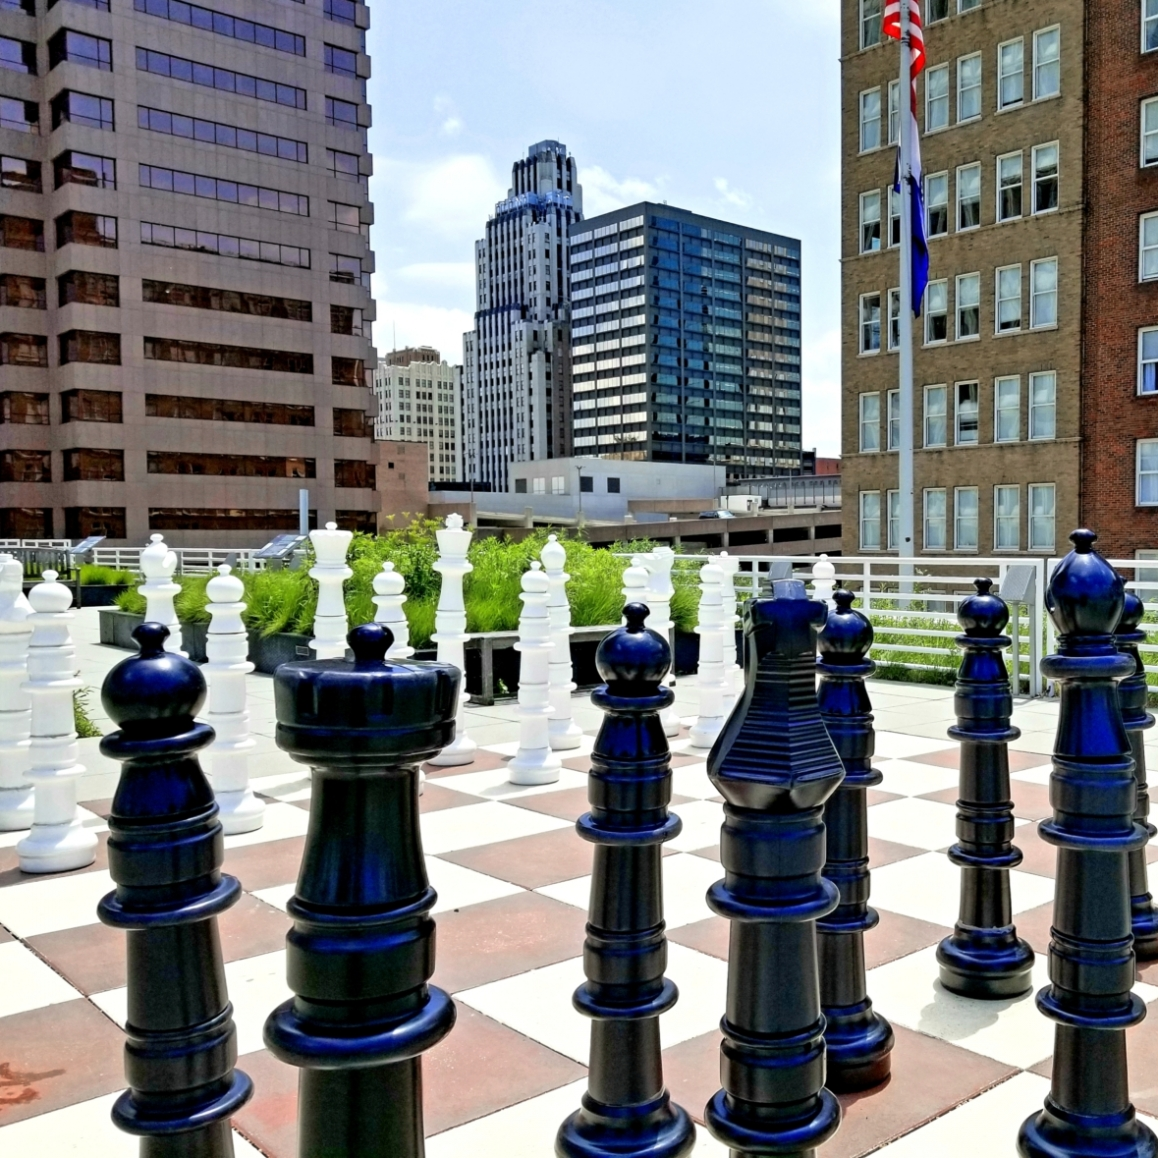 Child-Sized Chess. Photograph by George Pettigrew. **Selected for the My Missouri 2021 exhibition**